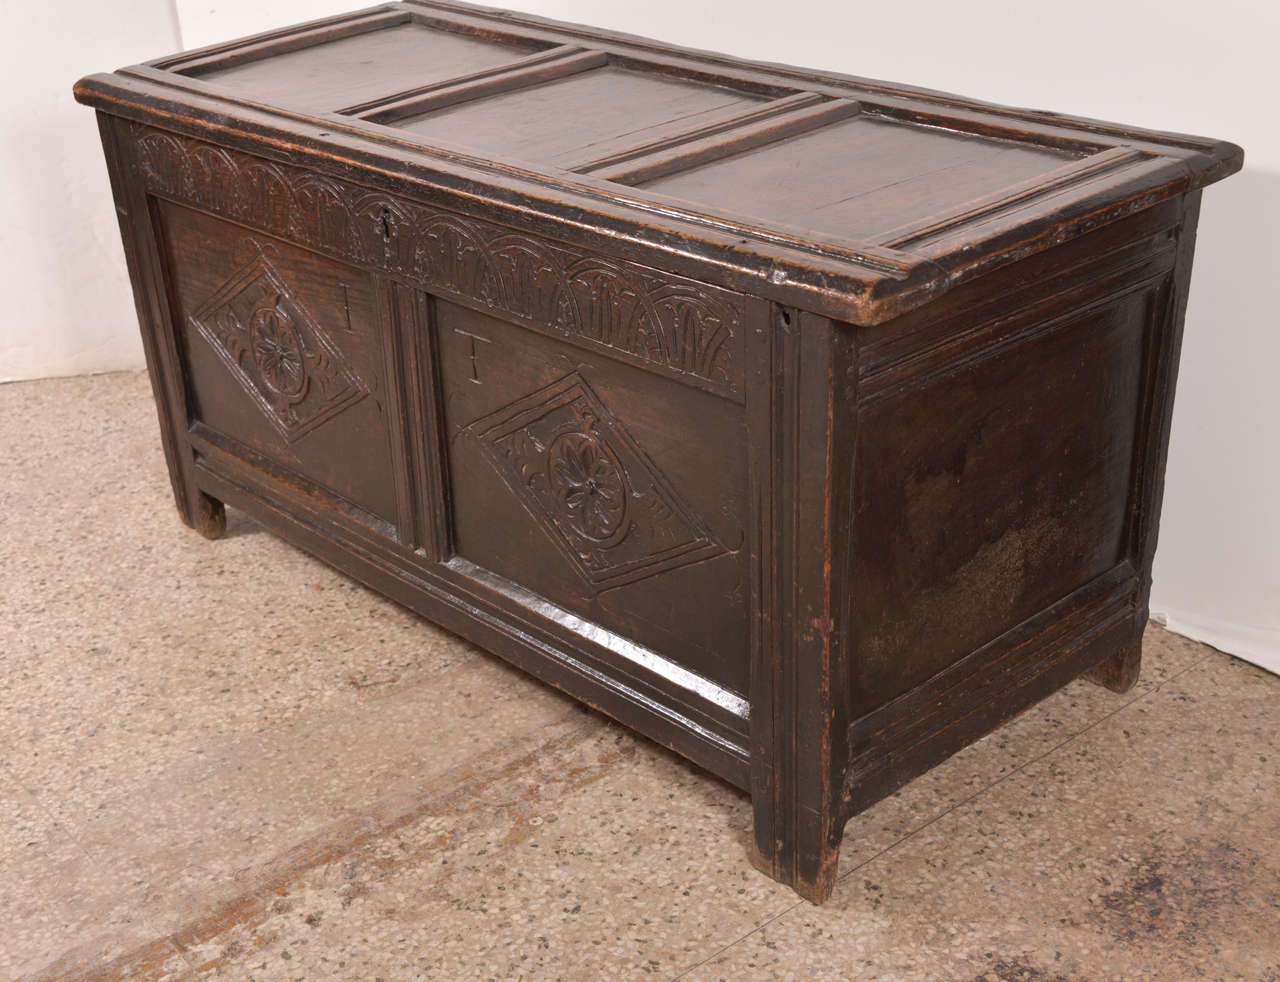 Early English oak chest, joined English paneled coffer, or chest, constructed in the late 17th or early 18th century. Used to store and protect a household's fine linens, clothing and valuables. This chest features carved nulling across the top of